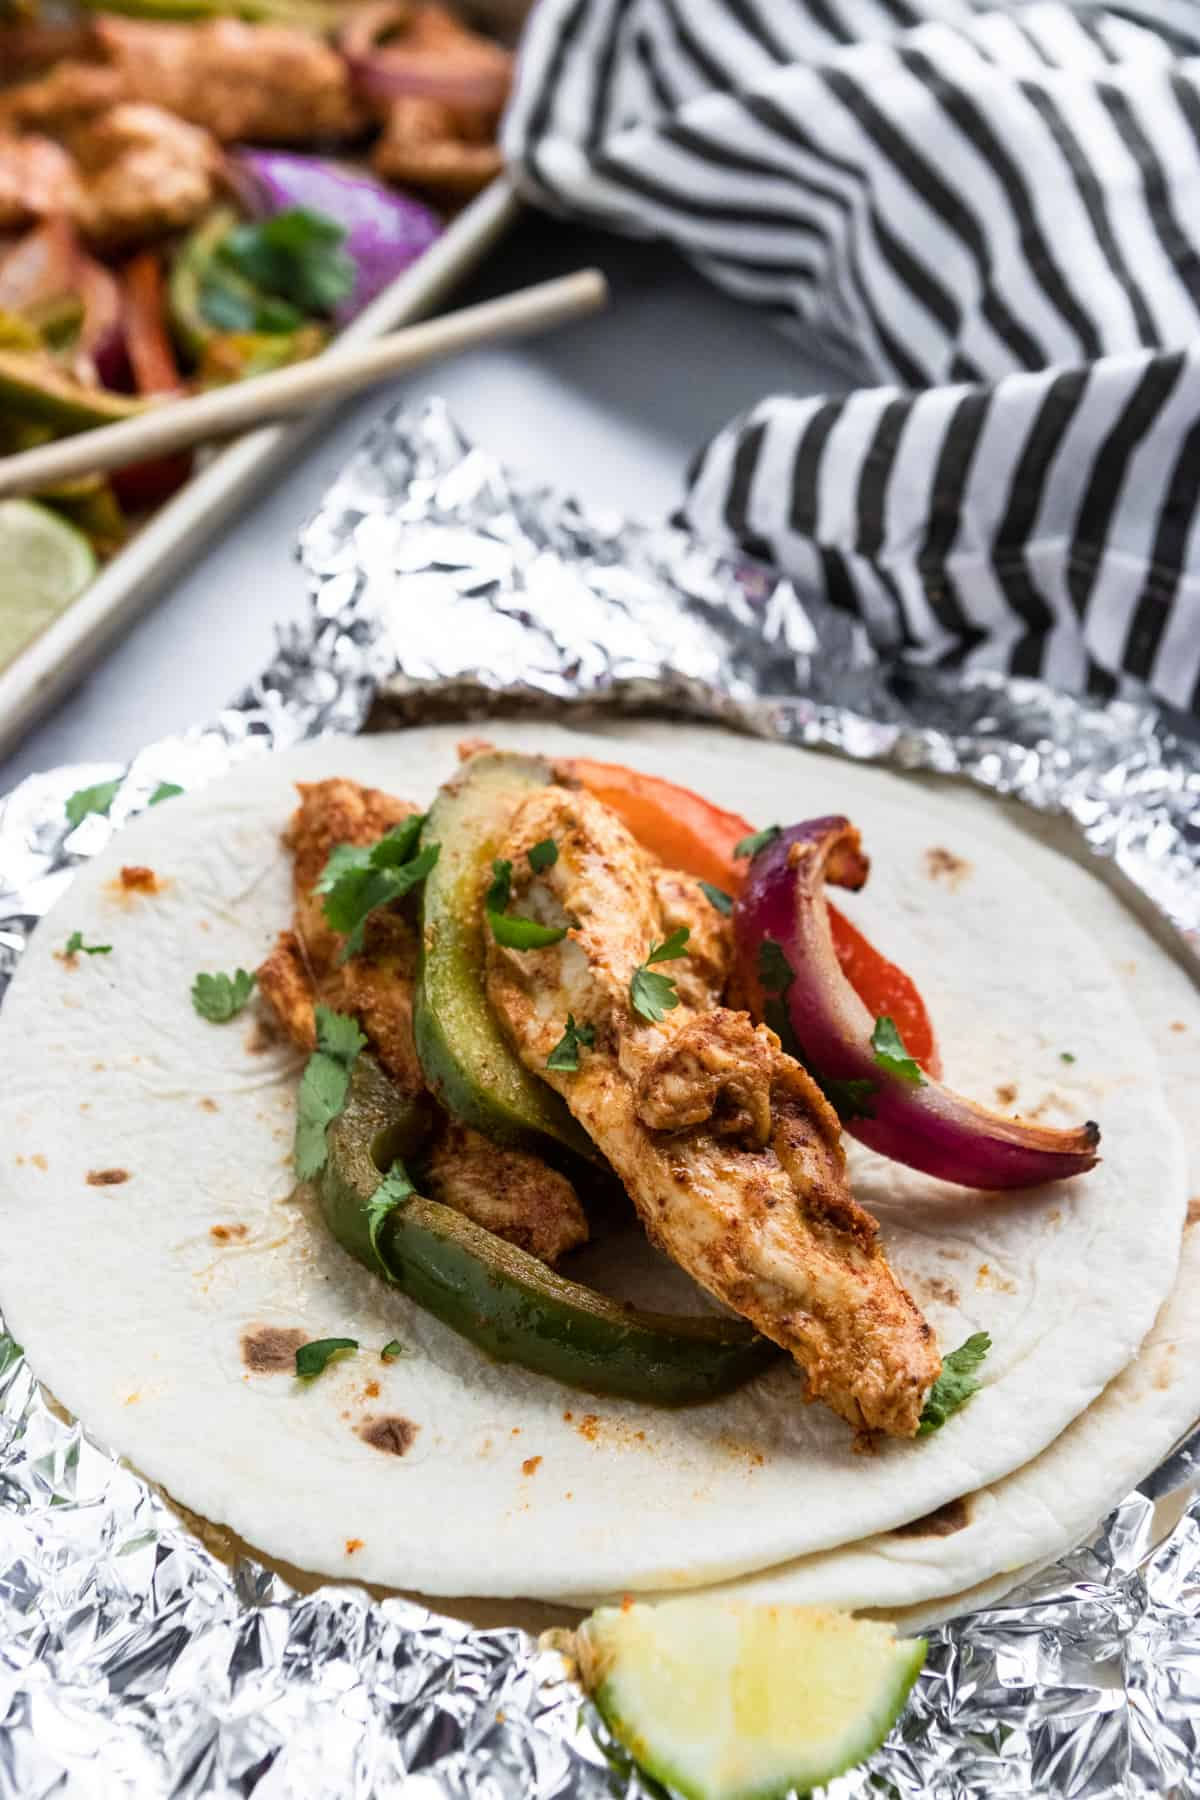 Honey Lime Baked Chicken Fajitas on foil.